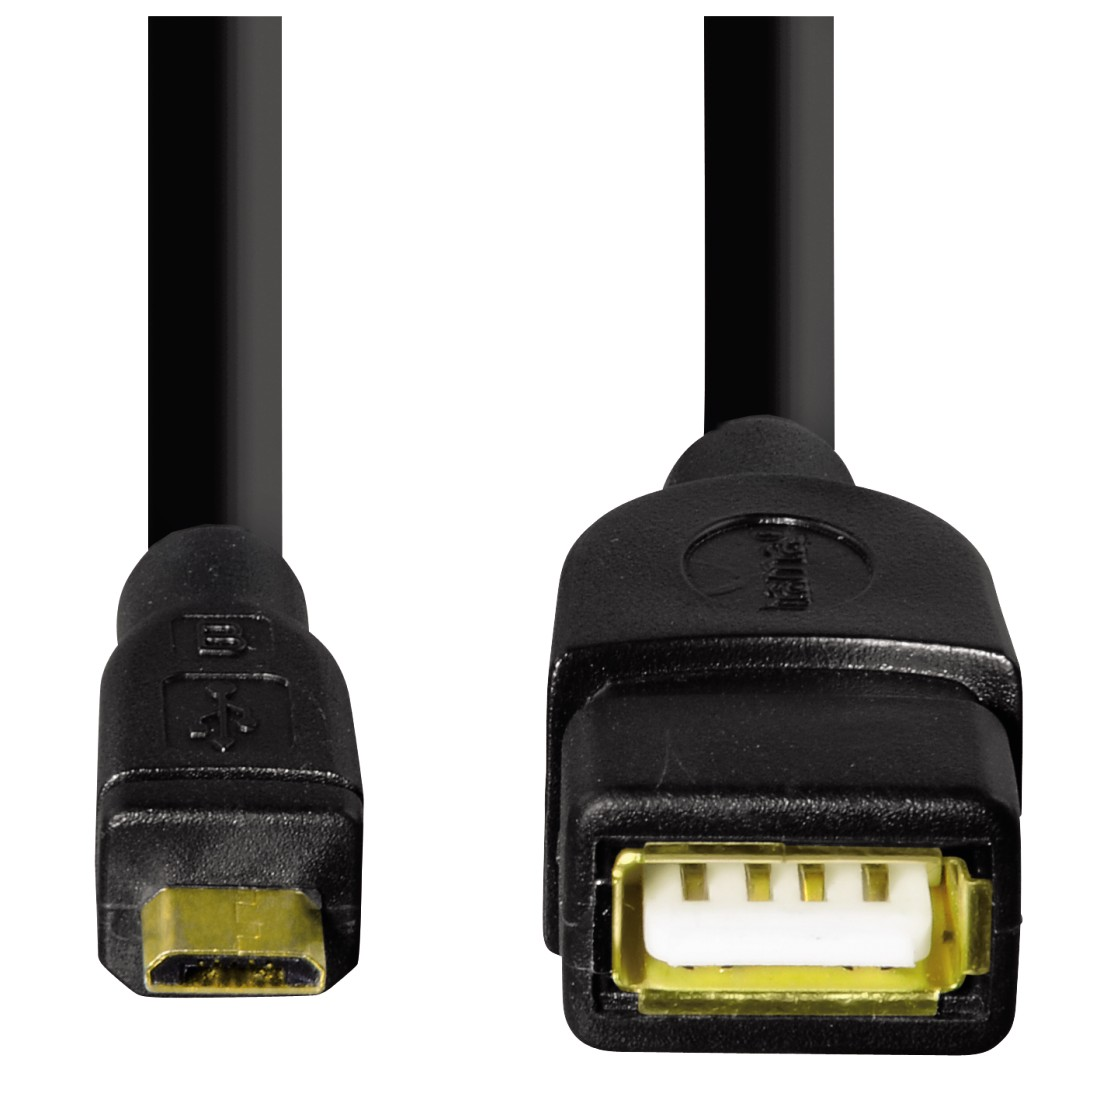 dex High-Res Detail - Hama, USB 2.0 OTG Adapter Cable, micro plug - A socket, black, 0.15 m